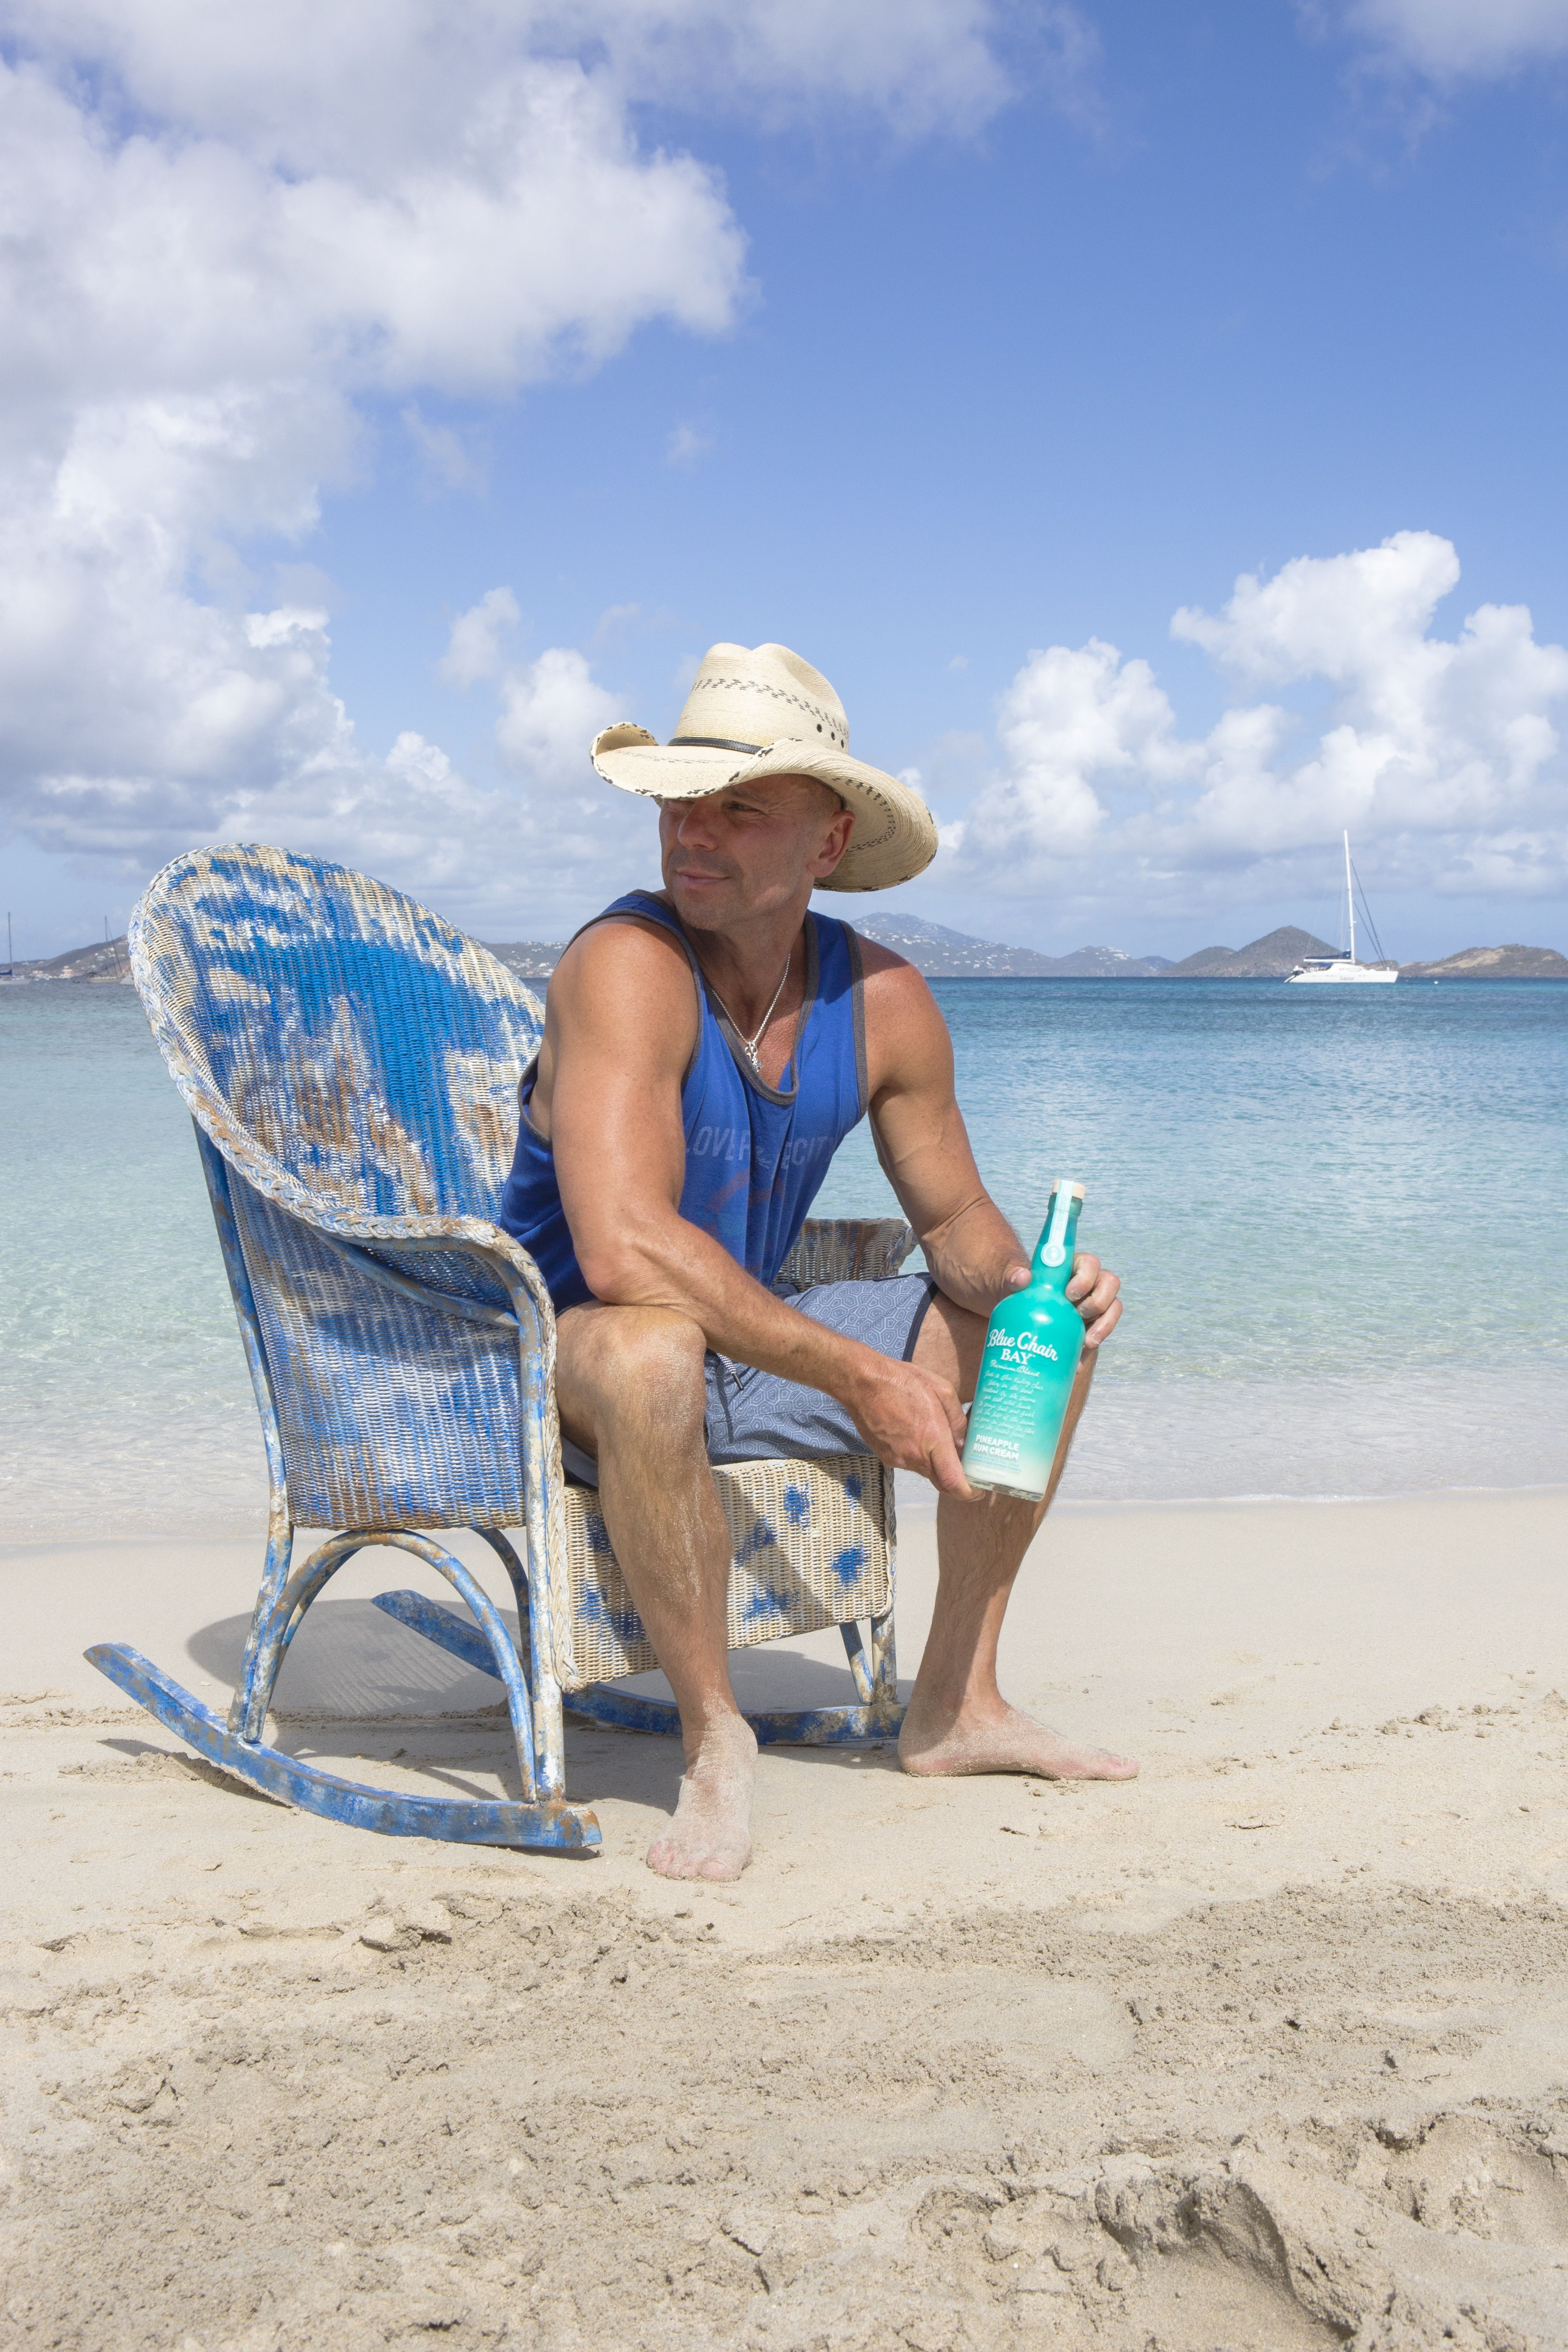 Kenny Chesney introducing Blue Chair Bay Rumu0027s newest flavor Pineapple Rum Cream. & Kenny Chesney introducing Blue Chair Bay Rumu0027s newest flavor ...